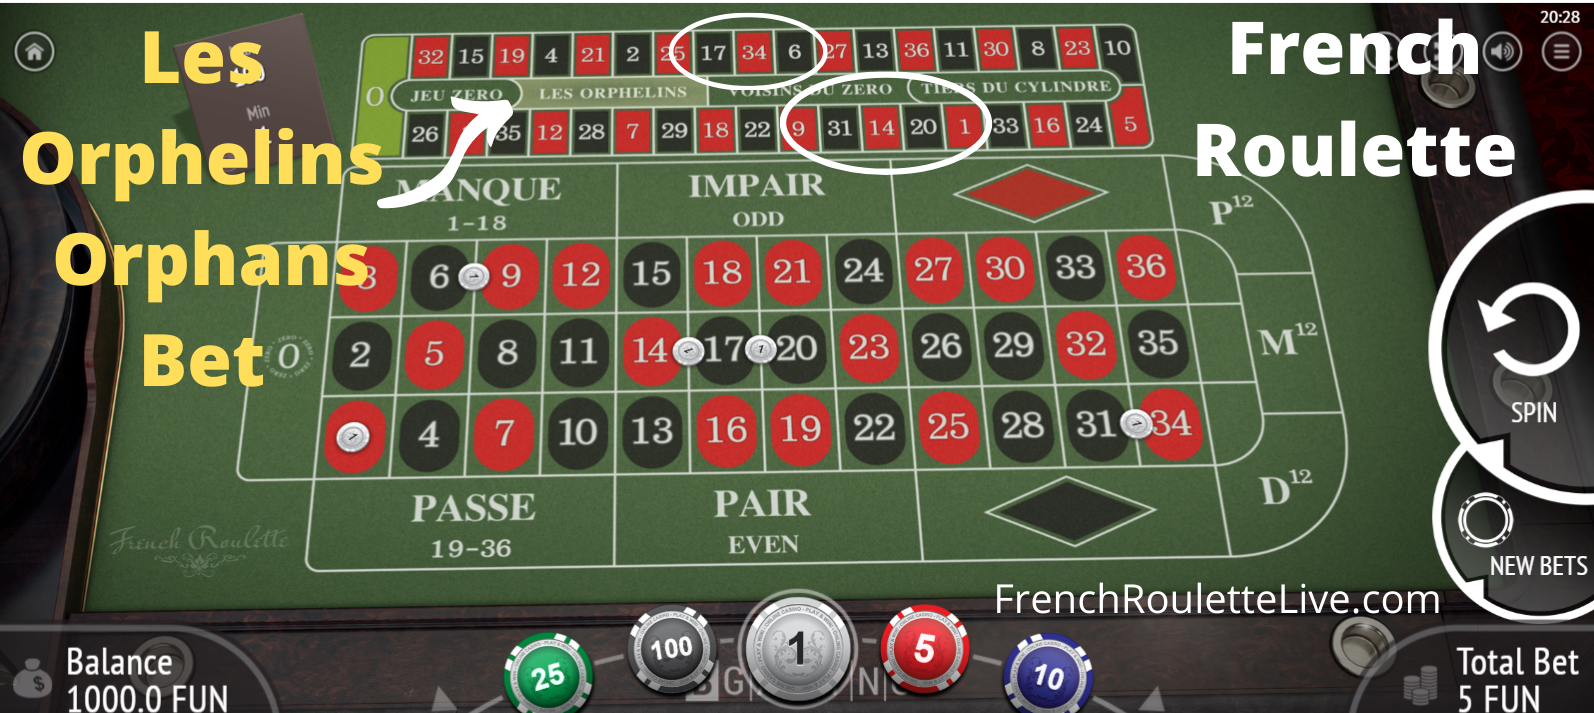 French Roulette Table Layouts - Les Orphelins Special Bet - Racetrack